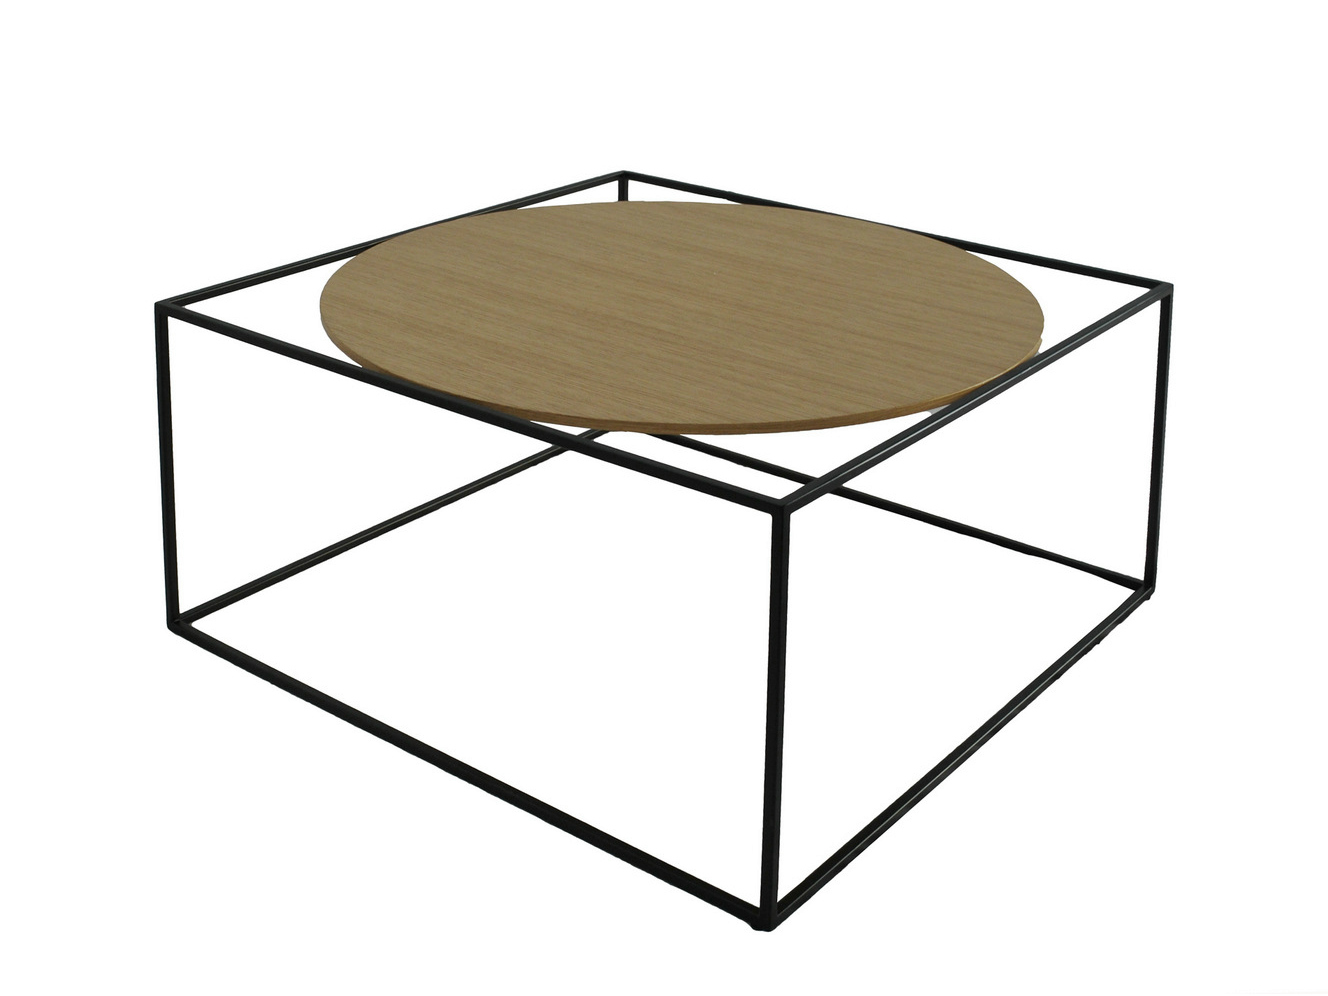 G3 wooden coffee table by roche bobois design johan lindst n Roche bobois coffee table